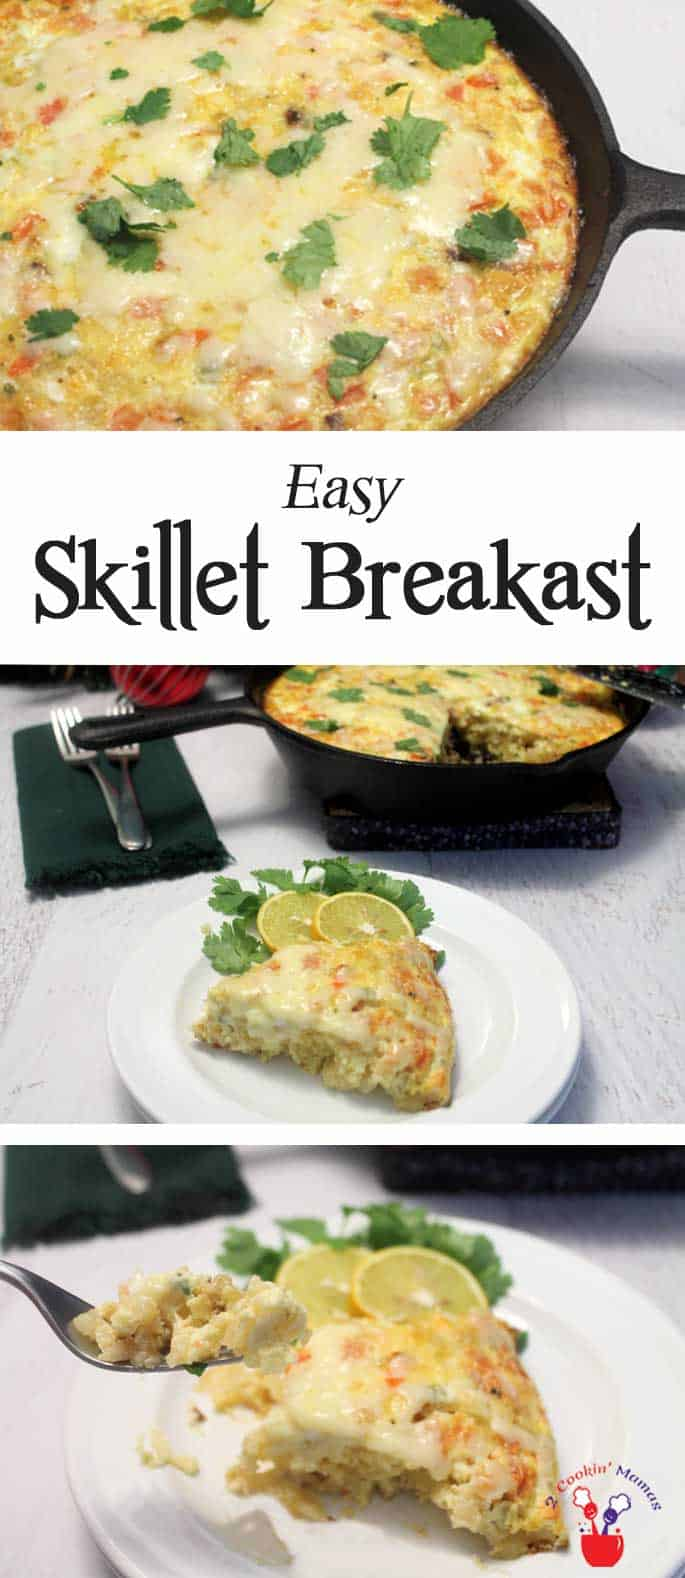 Easy Breakfast Skillet | 2 Cookin Mamas A deliciously filling & easy breakfast skillet that's made all in one pan. All you need are 6 ingredients - bacon, eggs, cheese, hash browns, salsa and milk. So easy to make, just mix and bake. #recipe